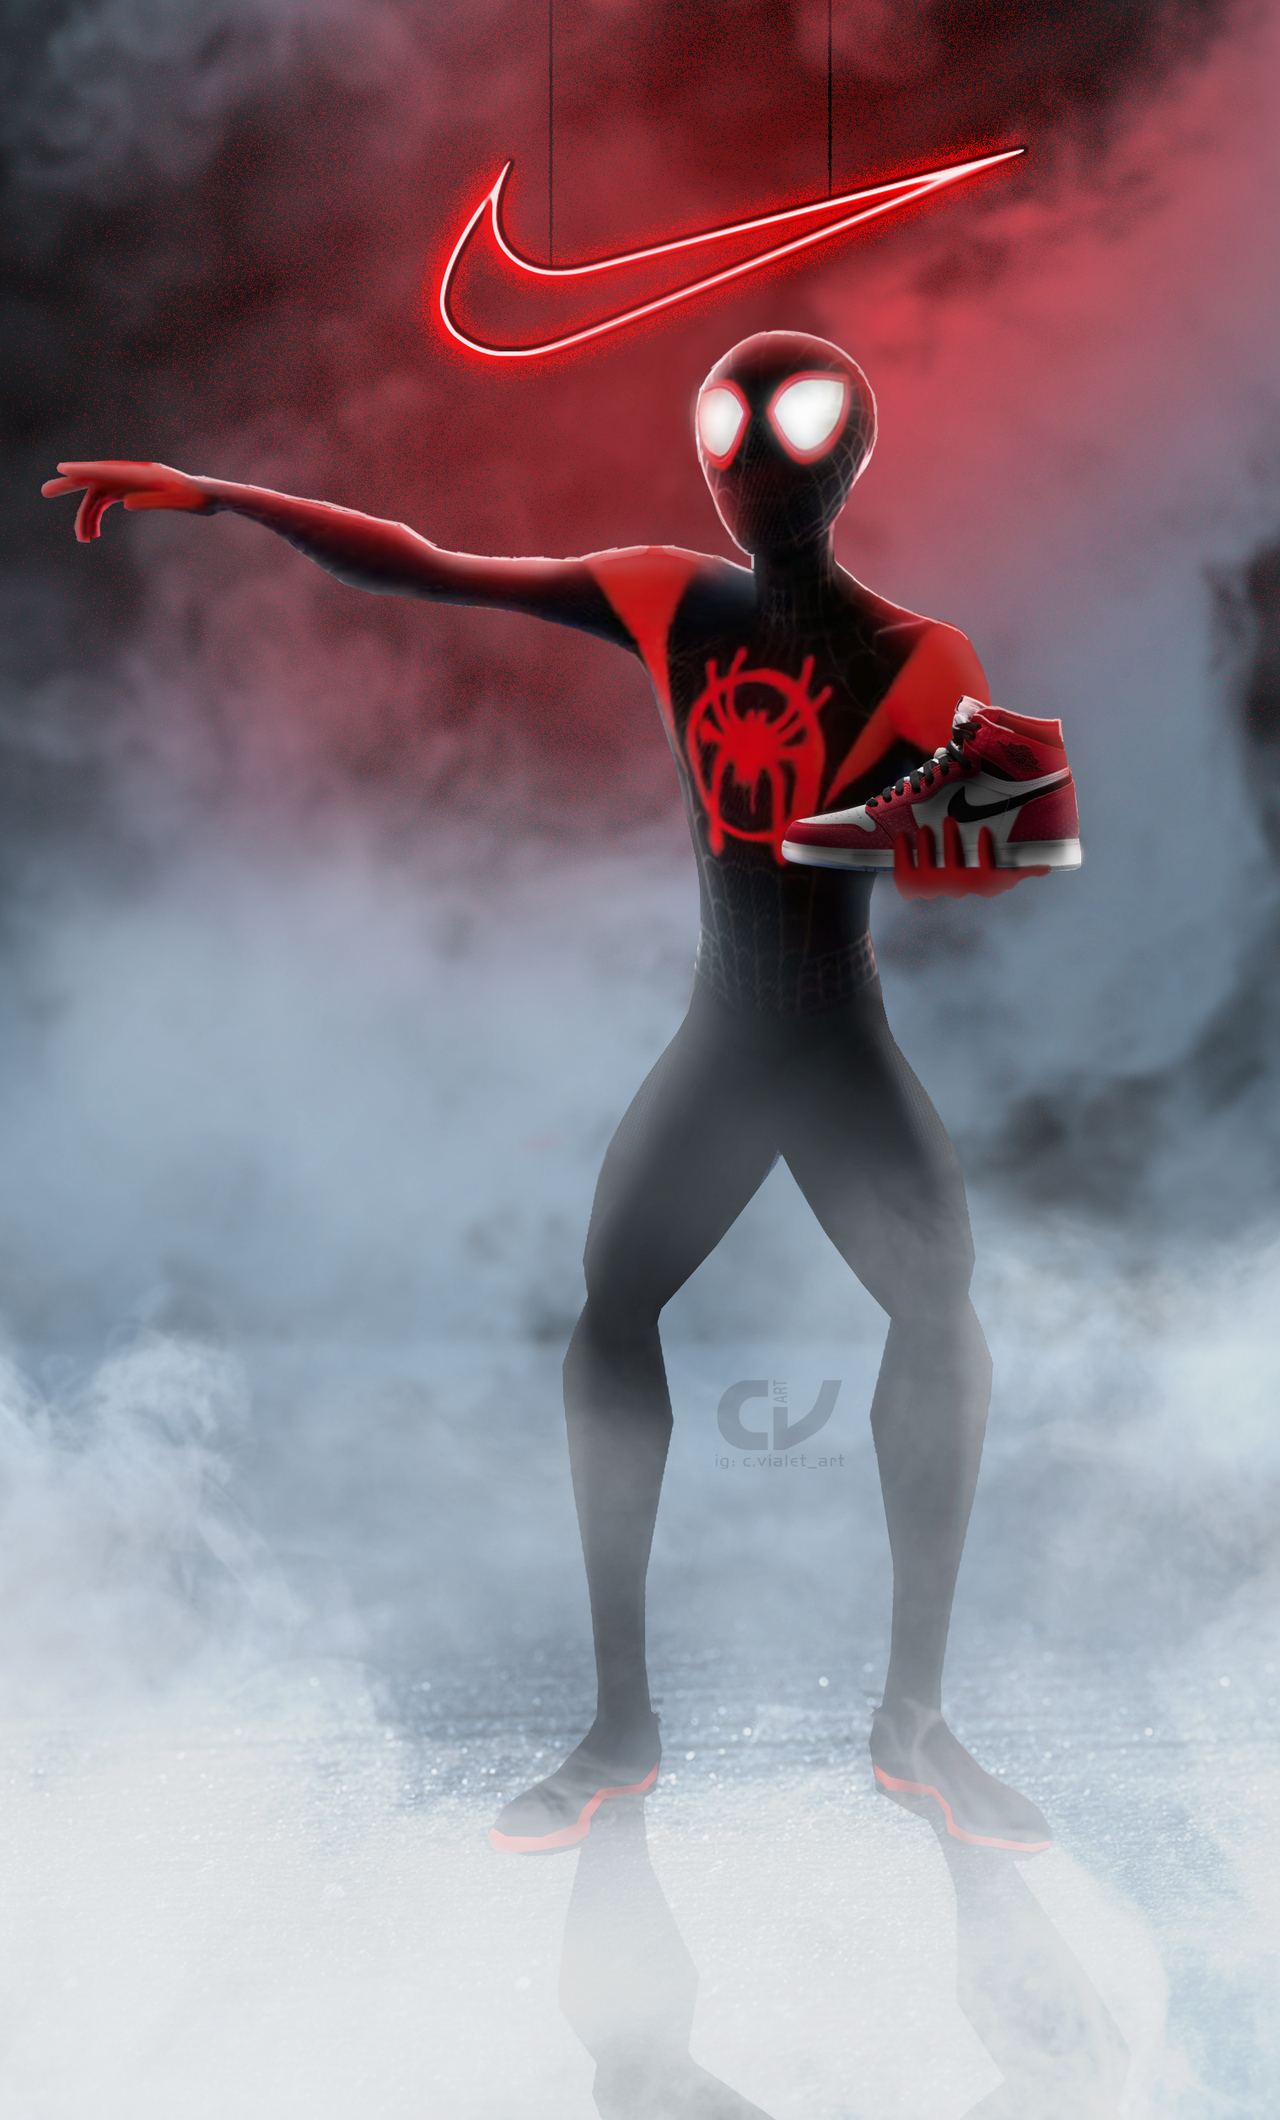 1280x2120 Spiderman Miles Morales Nike Air Jordan iPhone 6 ...